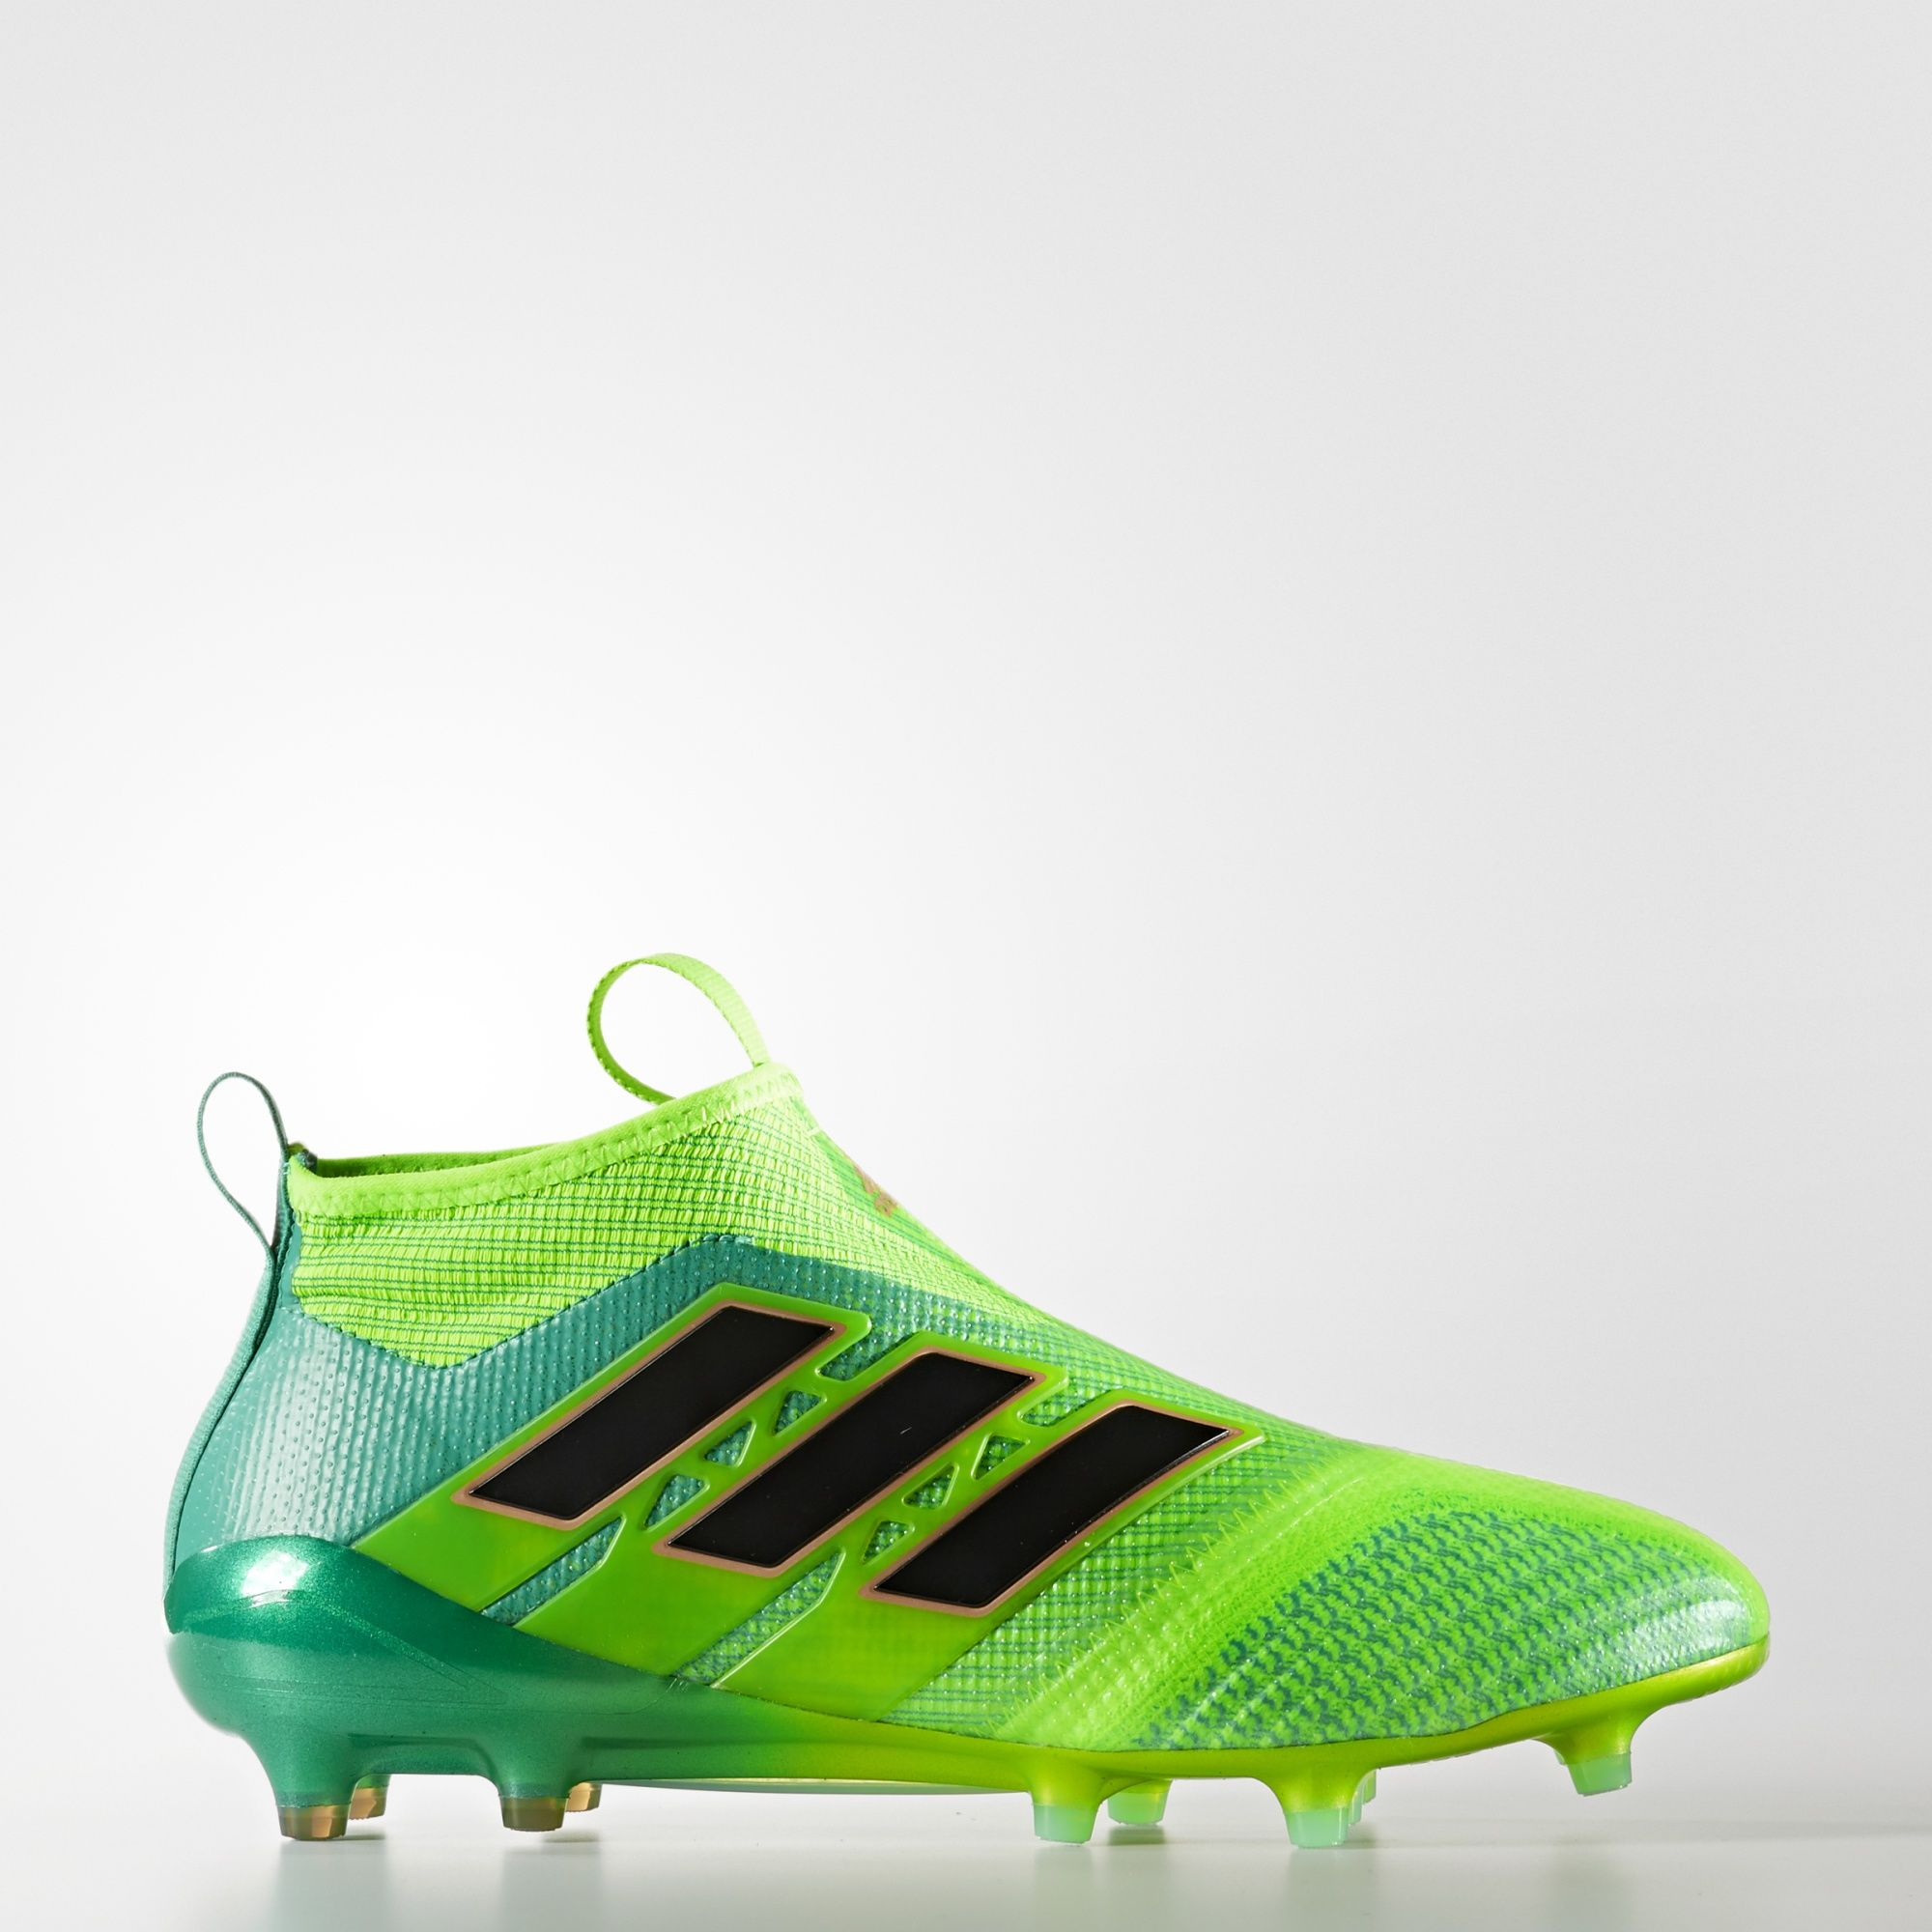 adidas ace 17 purecontrol turbocharge firm ground boots. Black Bedroom Furniture Sets. Home Design Ideas